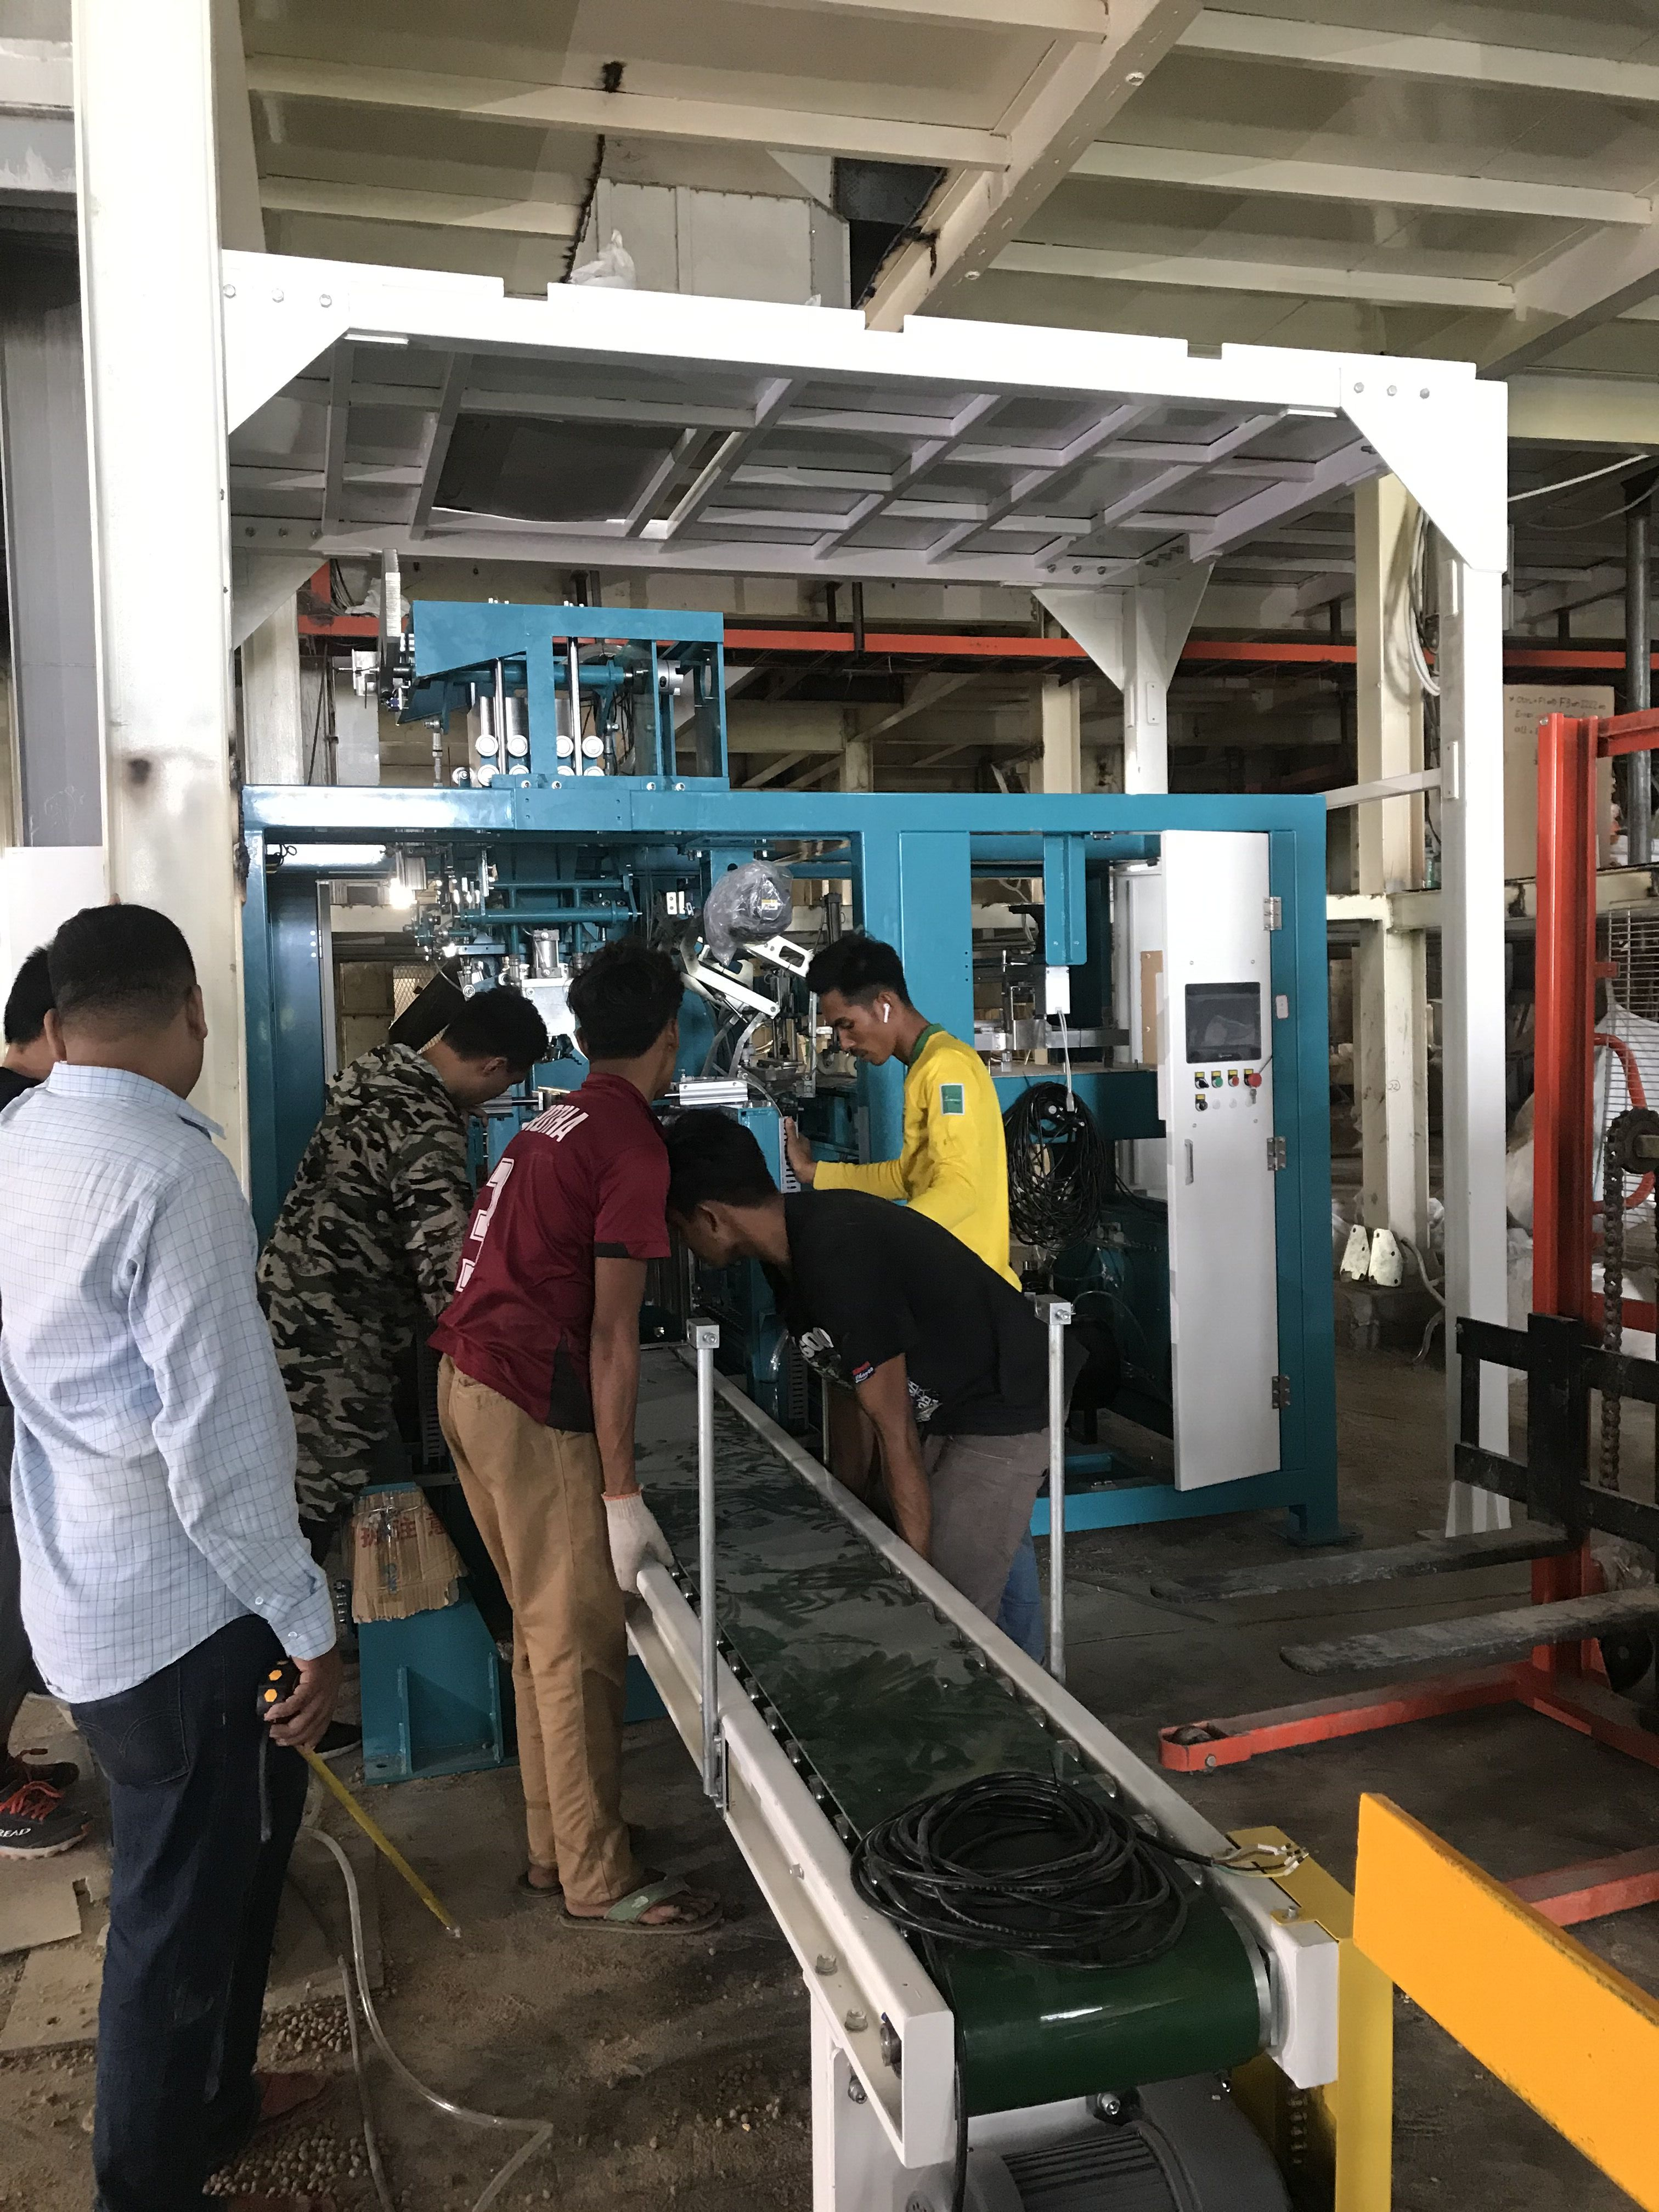 Grains, pulses, iodised salts, sugar Bagging machine fully automated packing line for Bagging system fully automated packing line Textured Protein Bagging Machine Packing Machine bagging palletizing s